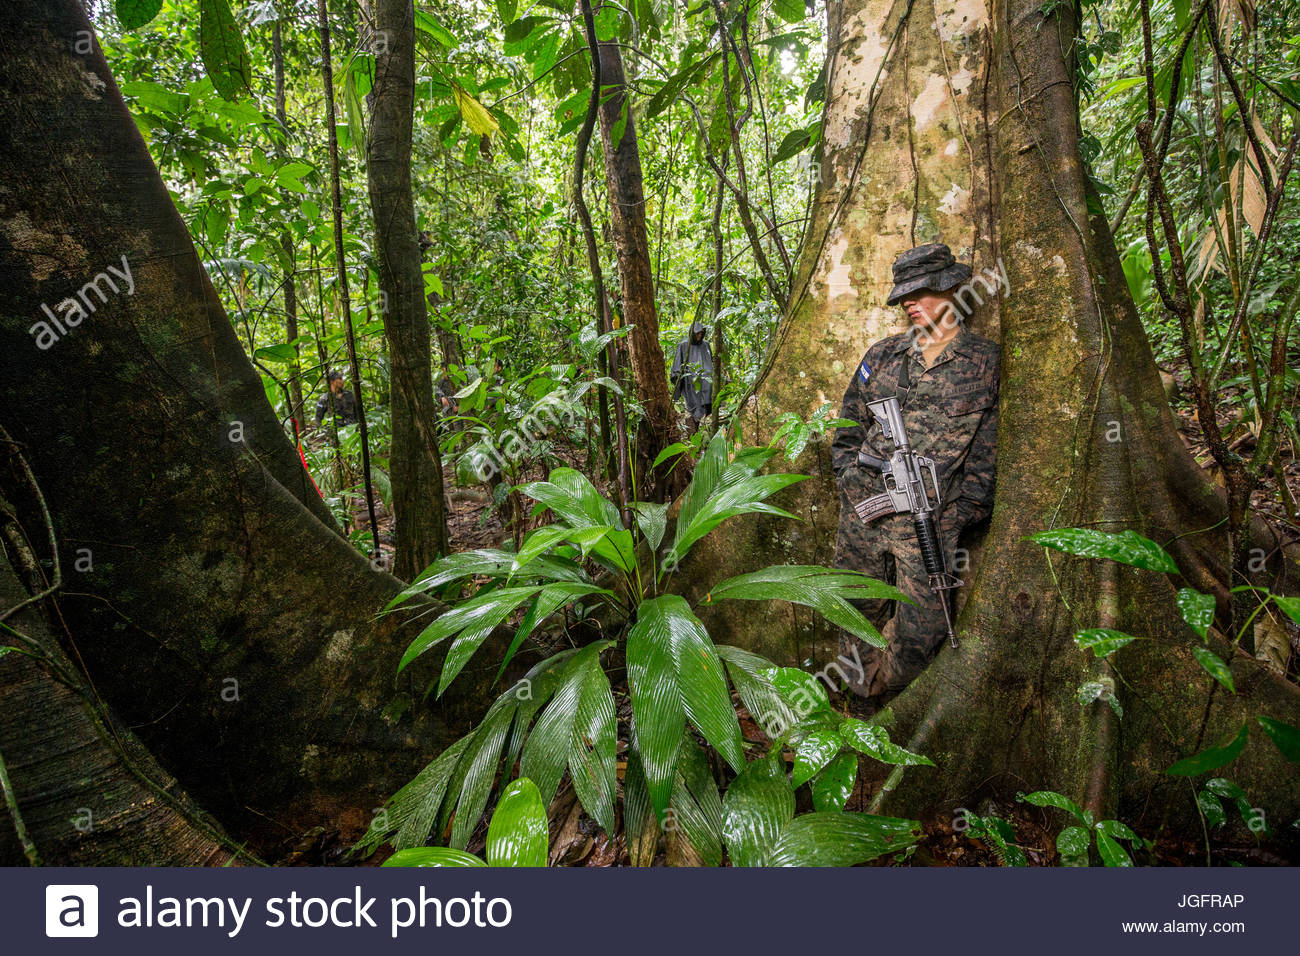 Honduran troops on an expedition to explore the ruins of a pre-Colombian city in the Mosquitia jungle. - Stock Image